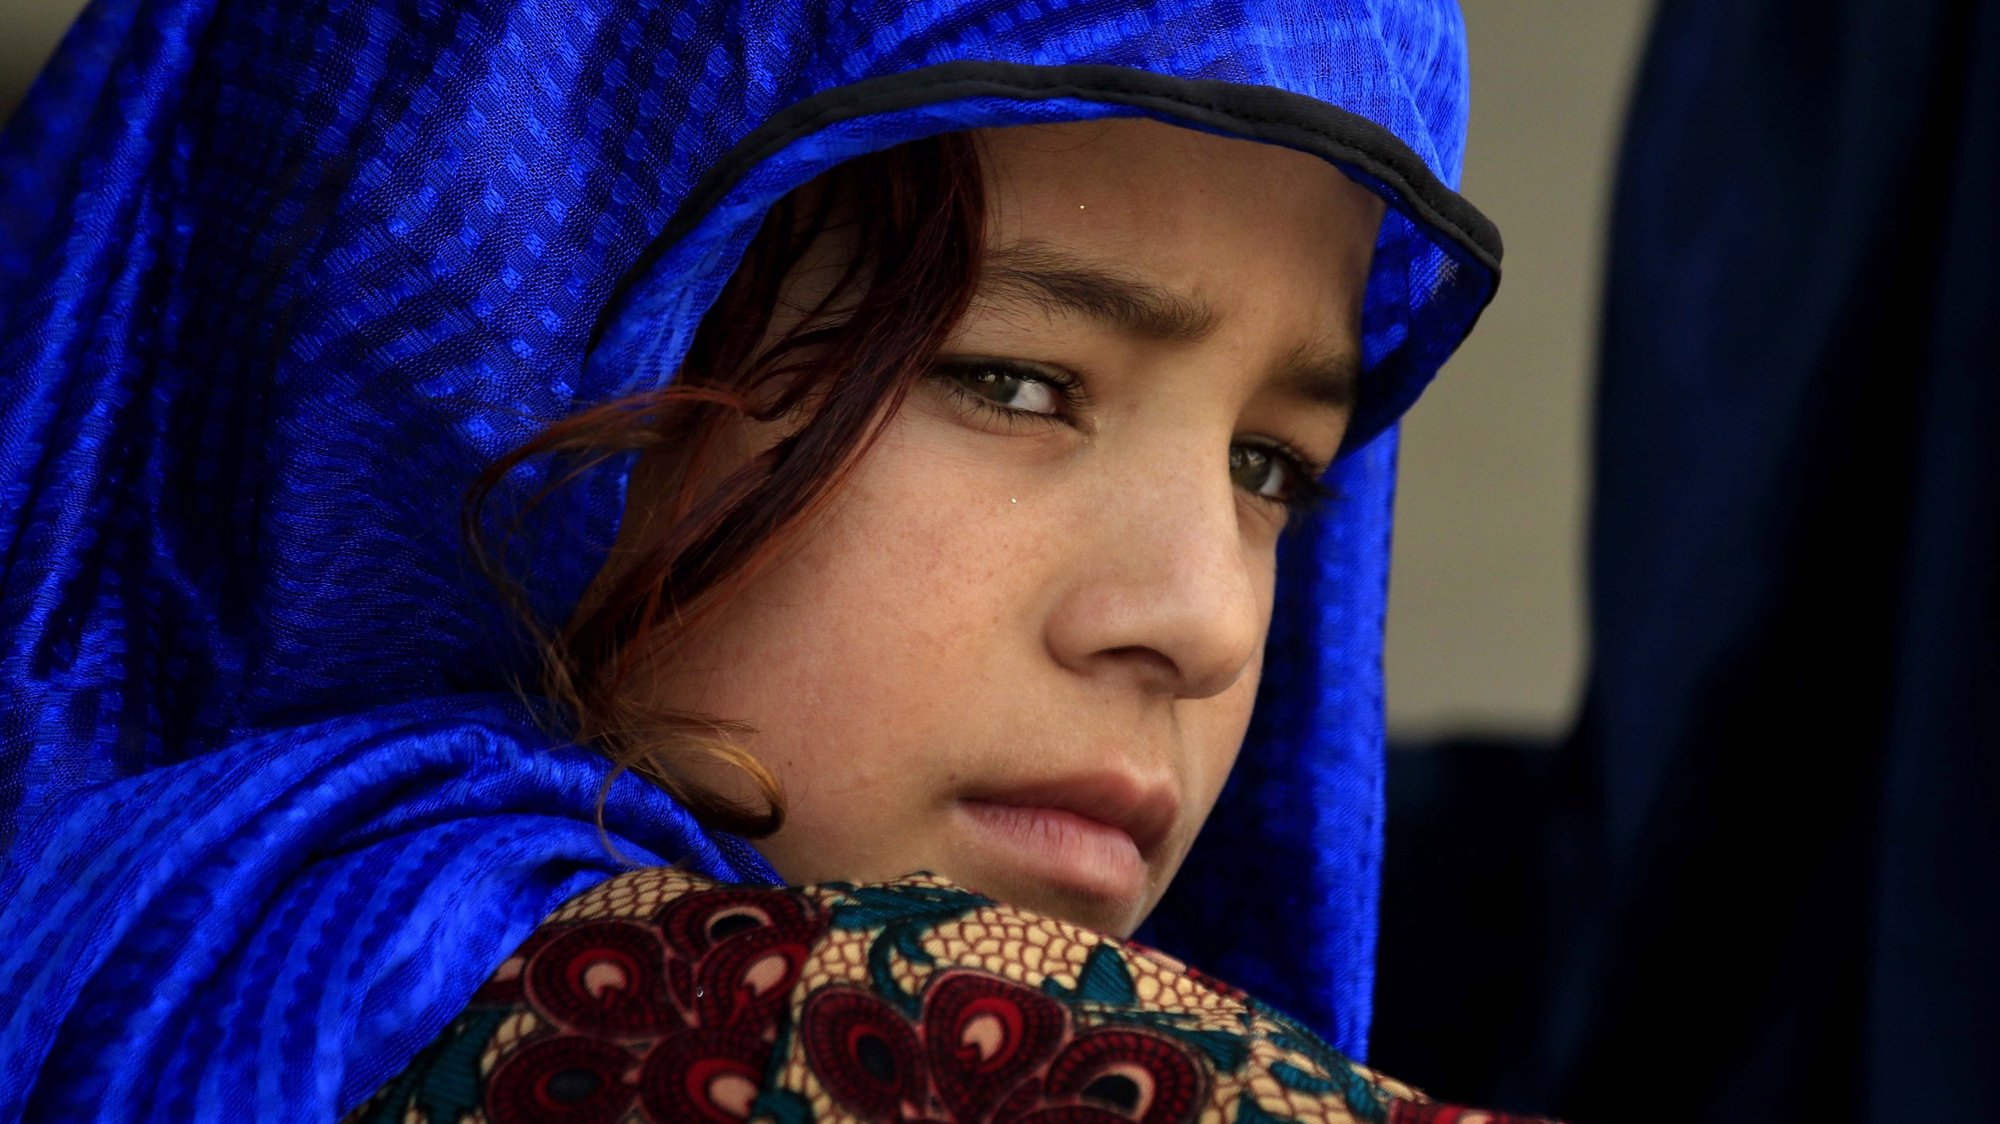 epa07005516 Afghan refugee girl waits to get registered at a United Nation High Commissioner for Refugees (UNHCR) registration center in Azakhel area of Nowshera, Khyber Pakhtunkhwa province, Pakistan, 08 September 2018. Pakistan that hosts more than 1.5 million Afghan refugees has repatriated more than one hundred thousands refugees back to their country under an UNHCR voluntarily return program in the last two years. Others are not identified.  EPA/BILAWAL ARBAB